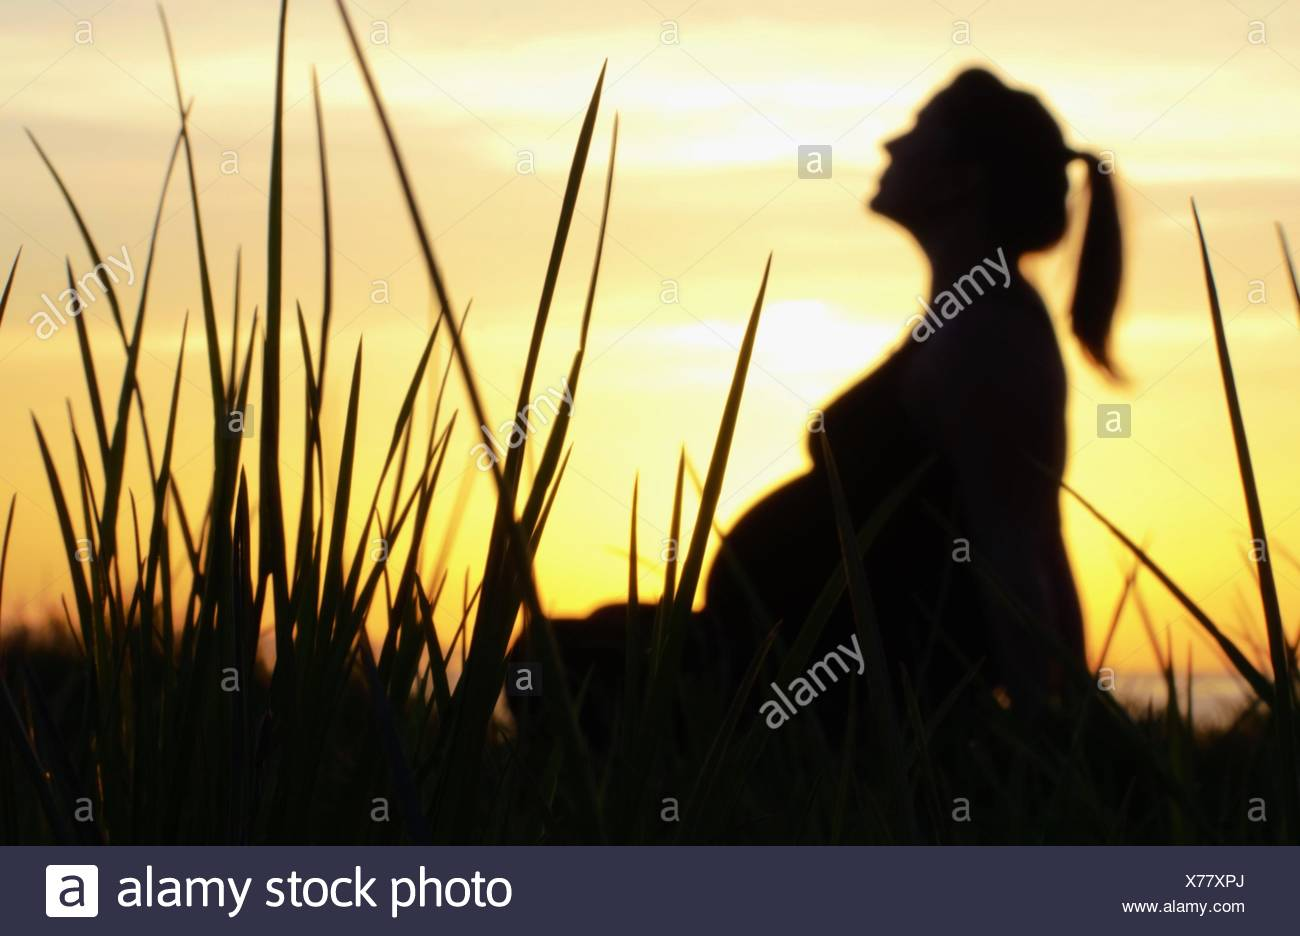 tall grass silhouette. Sunset Silhouette Of Pregnant Woman Sitting Amongst Tall Grass - Stock Image